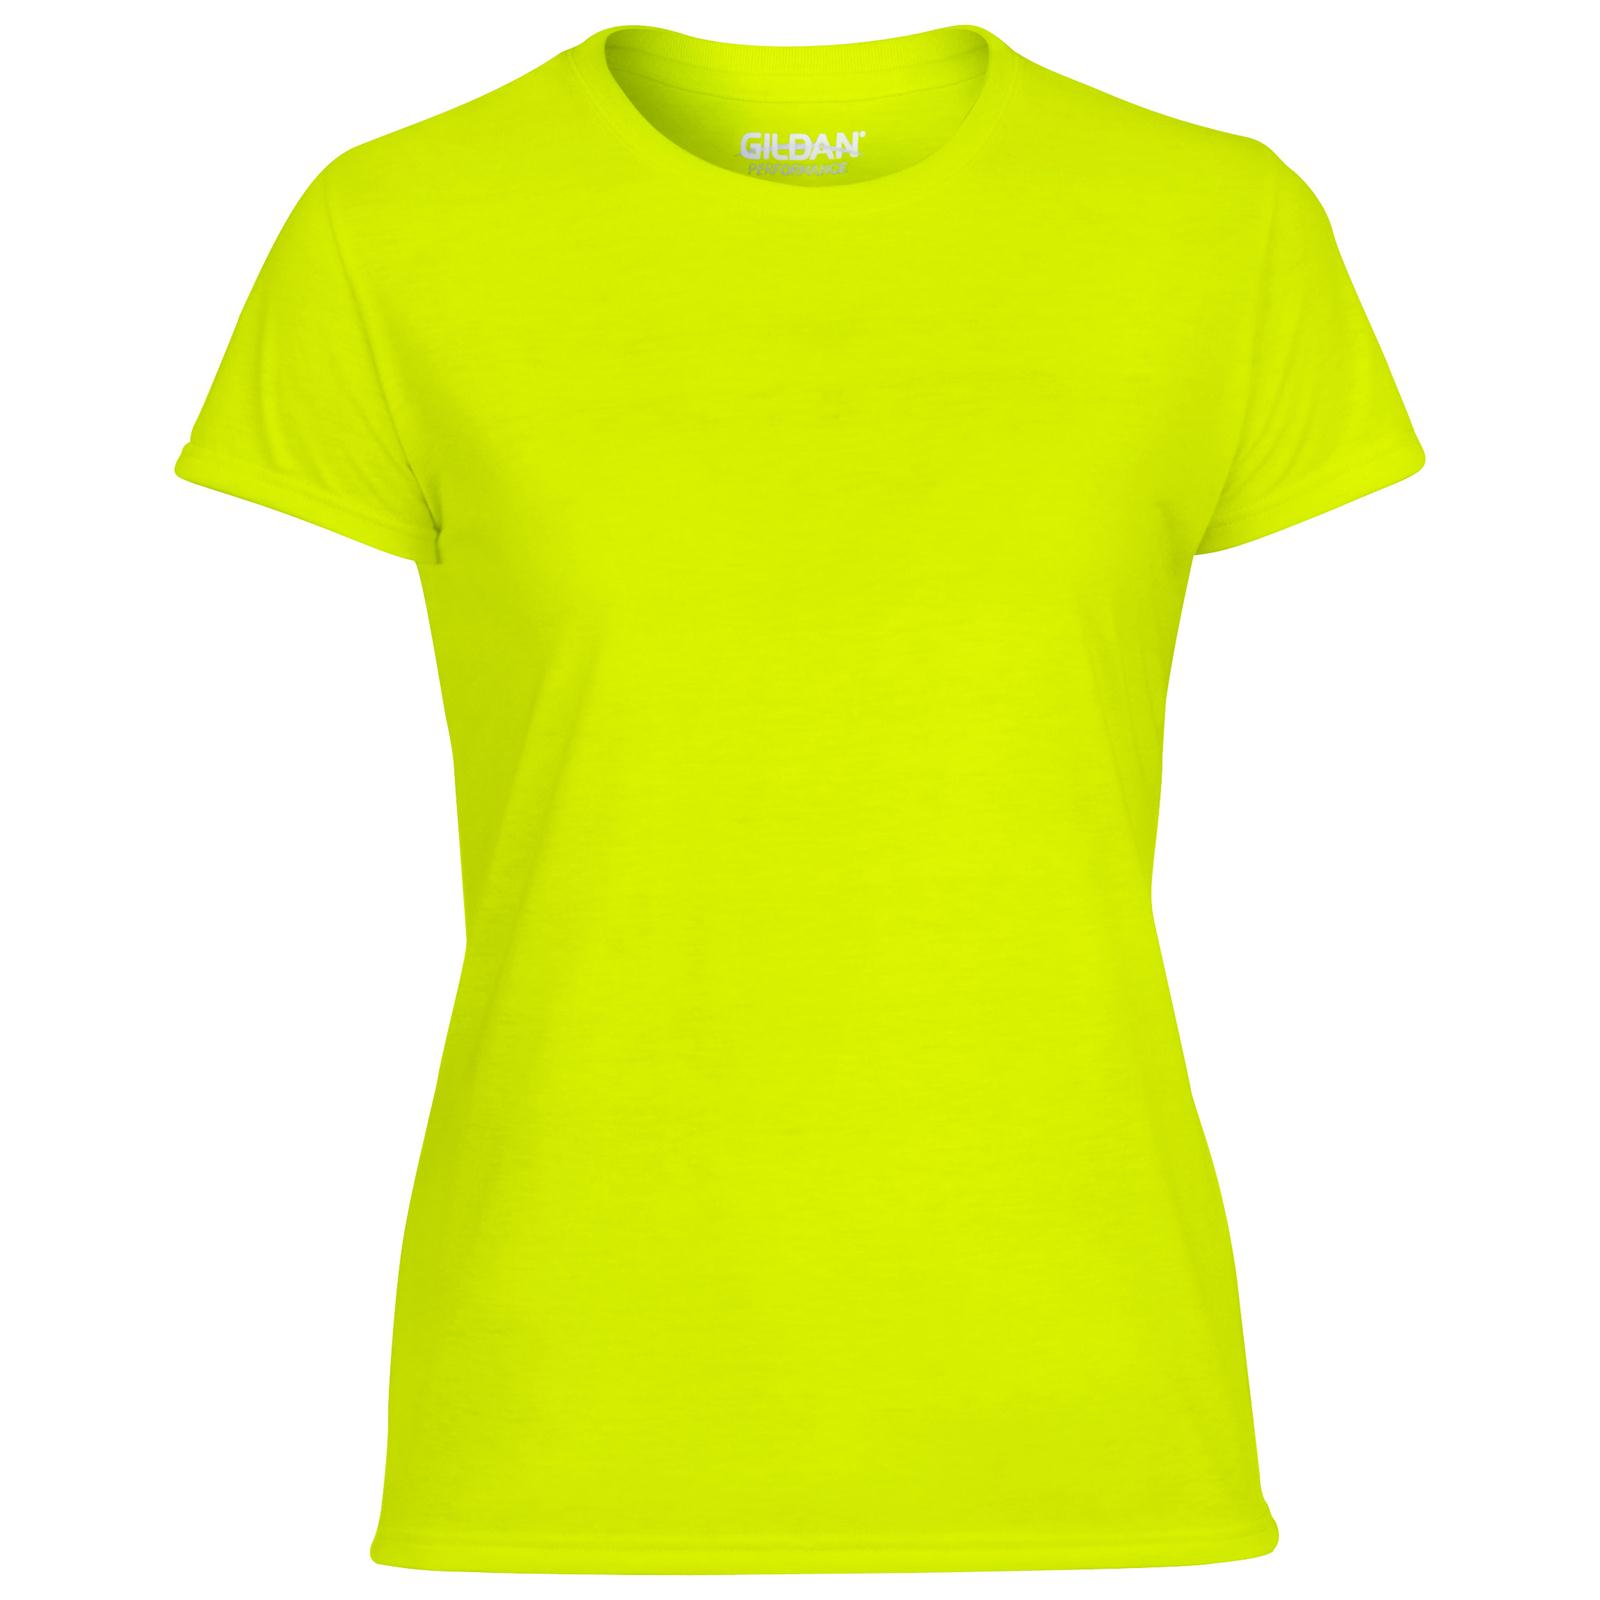 New GILDAN Womens Ladies Sports Core Cool Performance T Shirt 8 ...